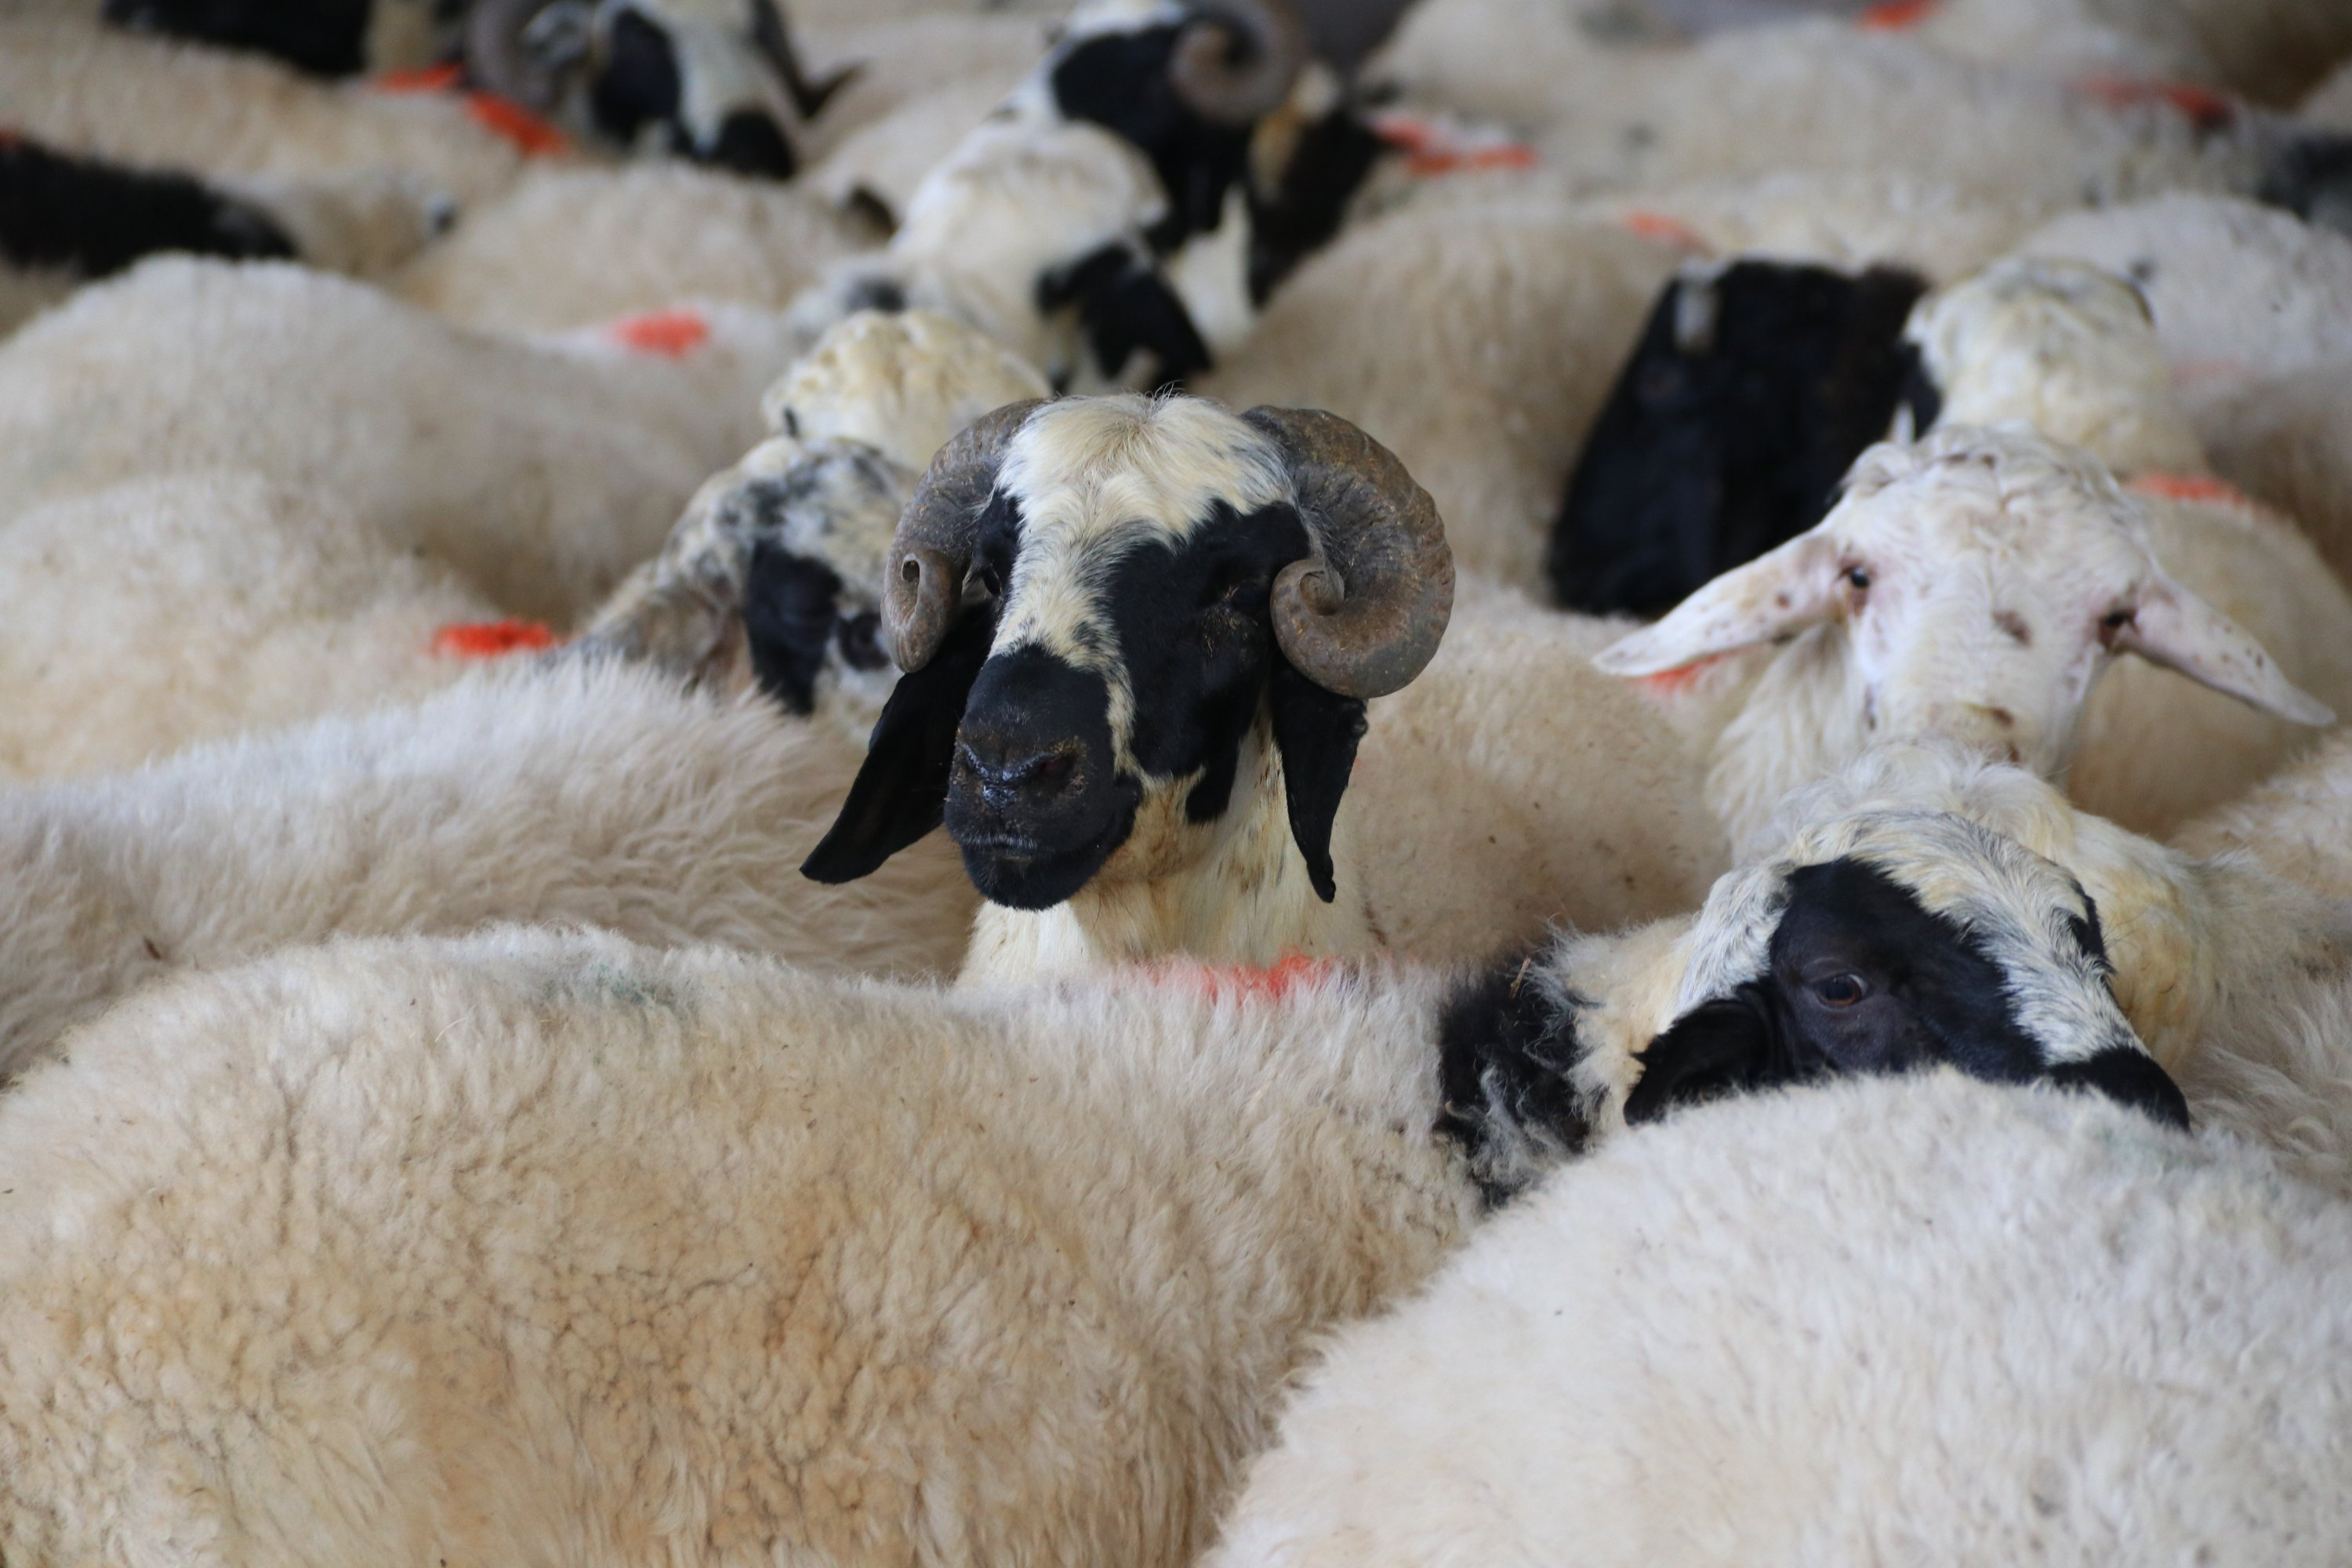 Sacrificial sheep are seen at an animal market in Diyarbakır, southeastern Turkey on July 29, 2020. (AA Photo)